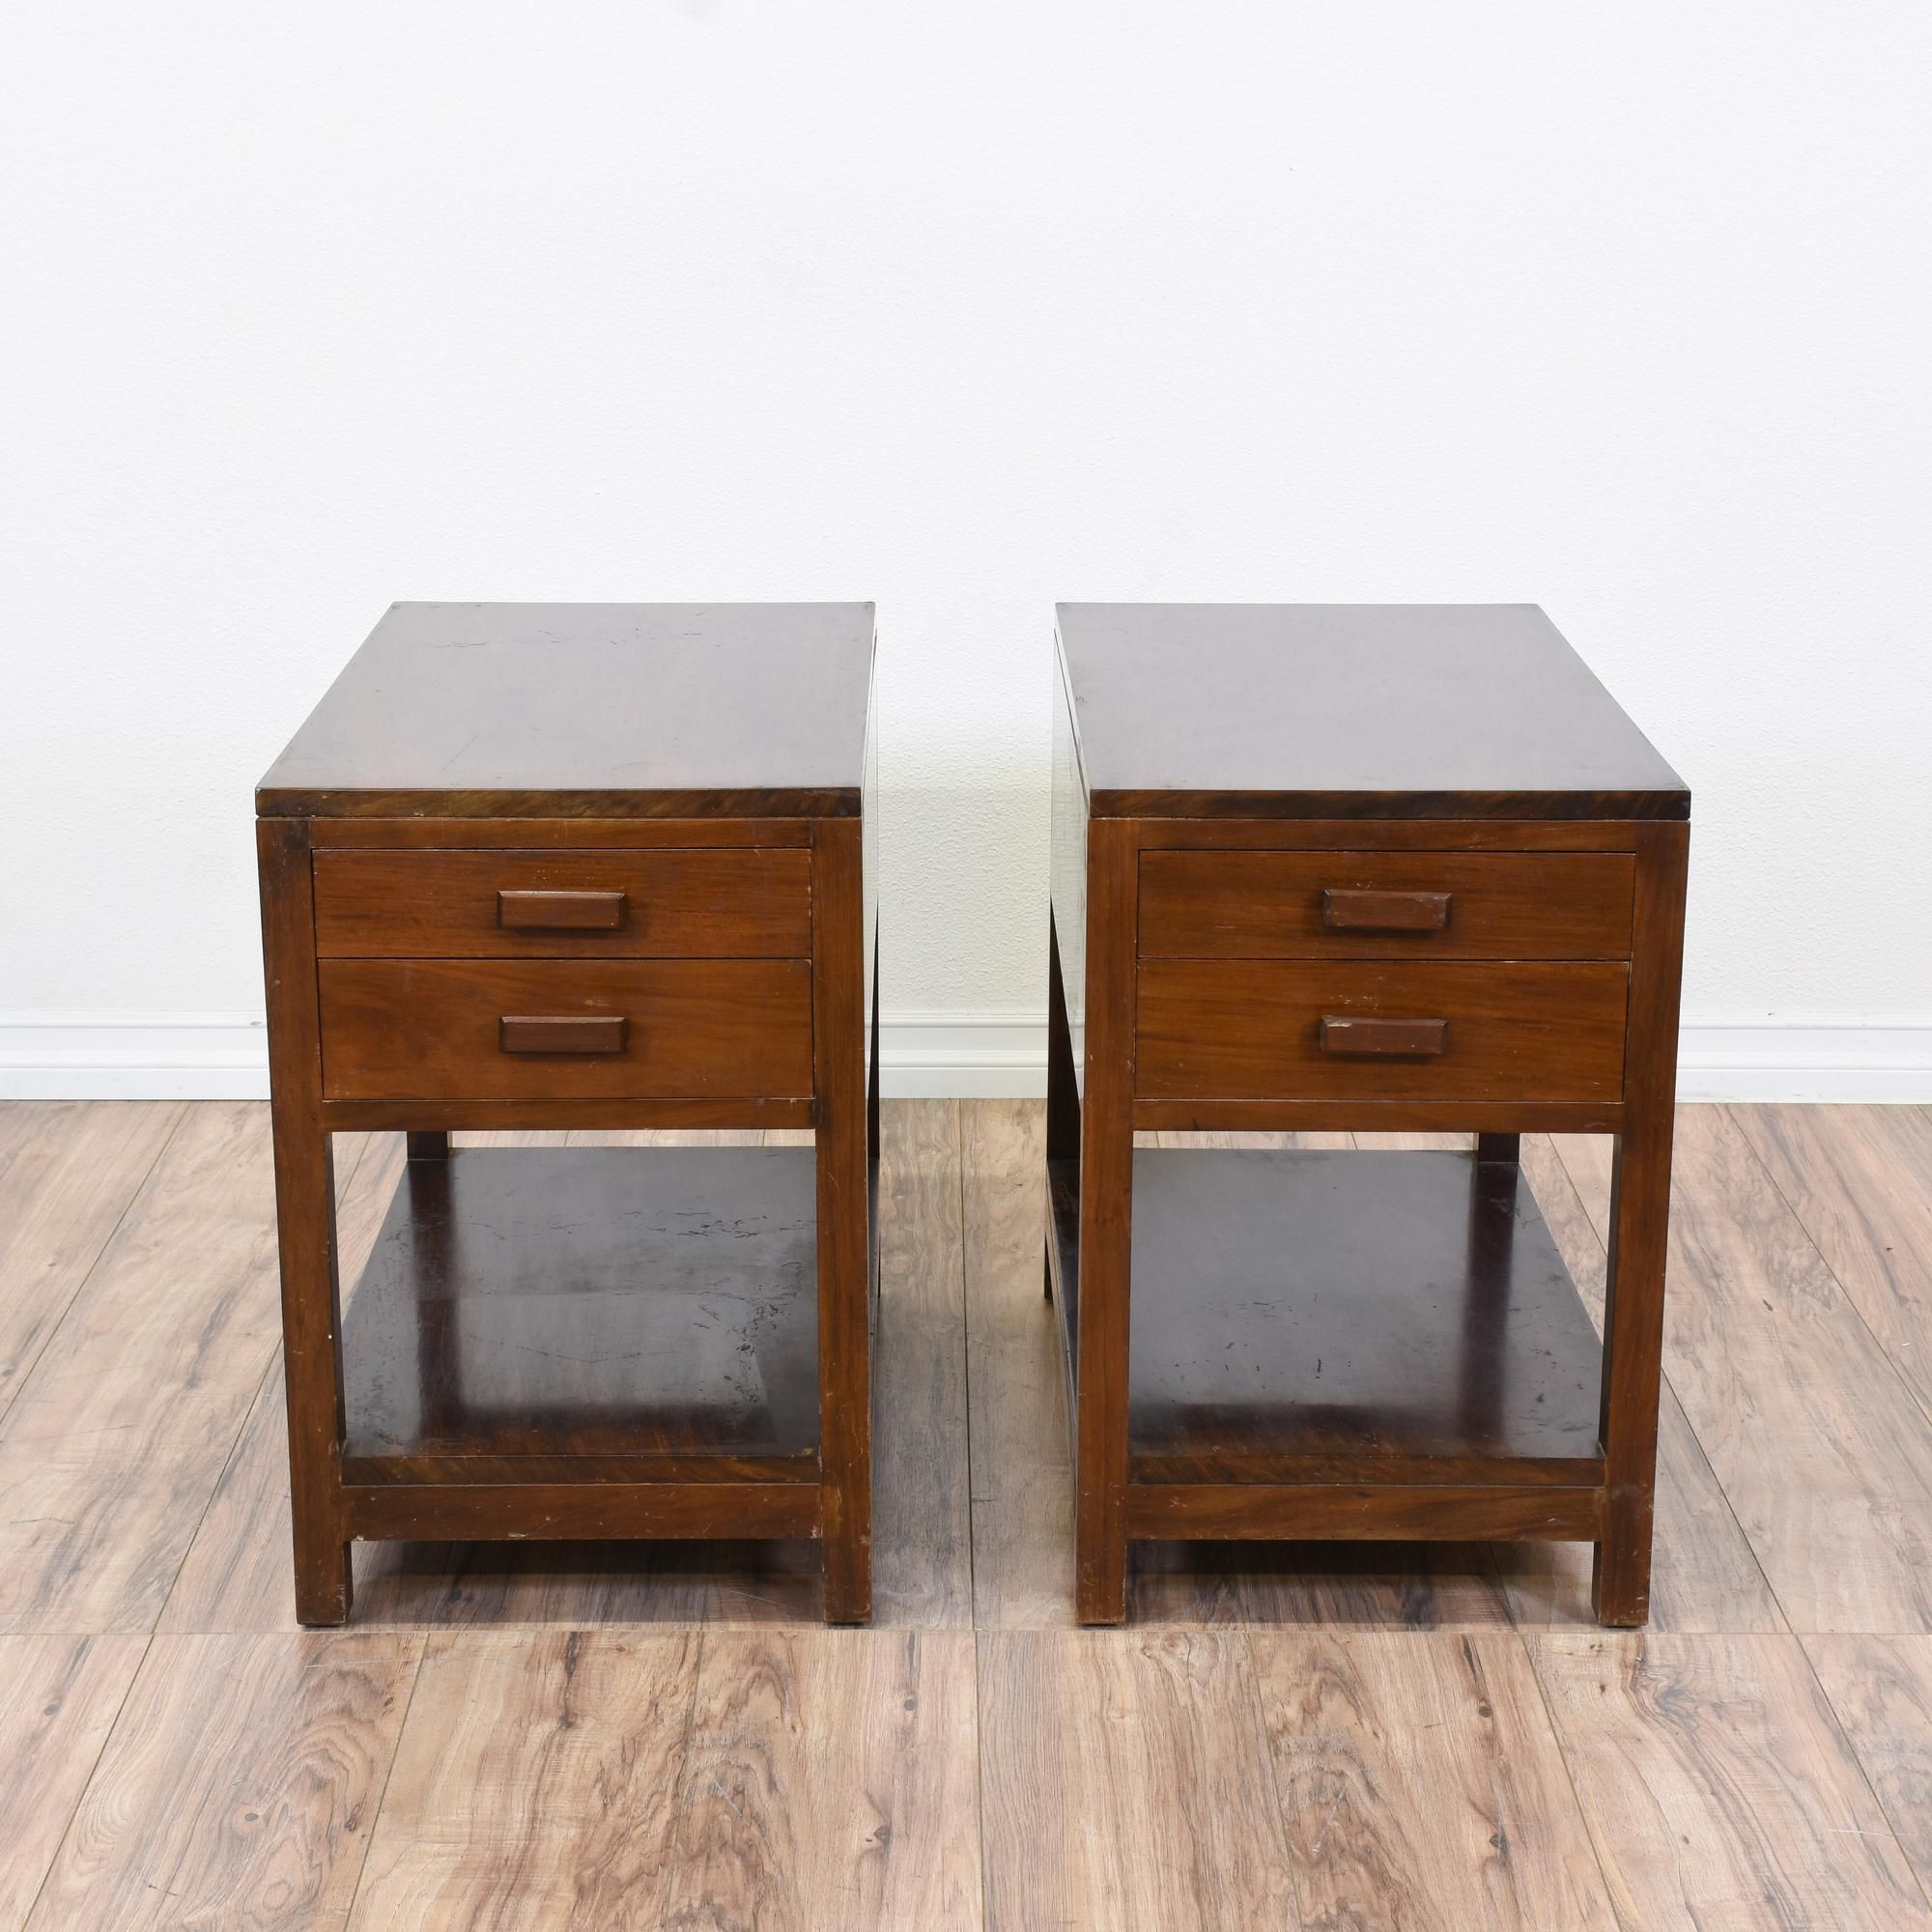 Pair Of Narrow But Deep 2 Drawer Nightstands Perfect Matching End